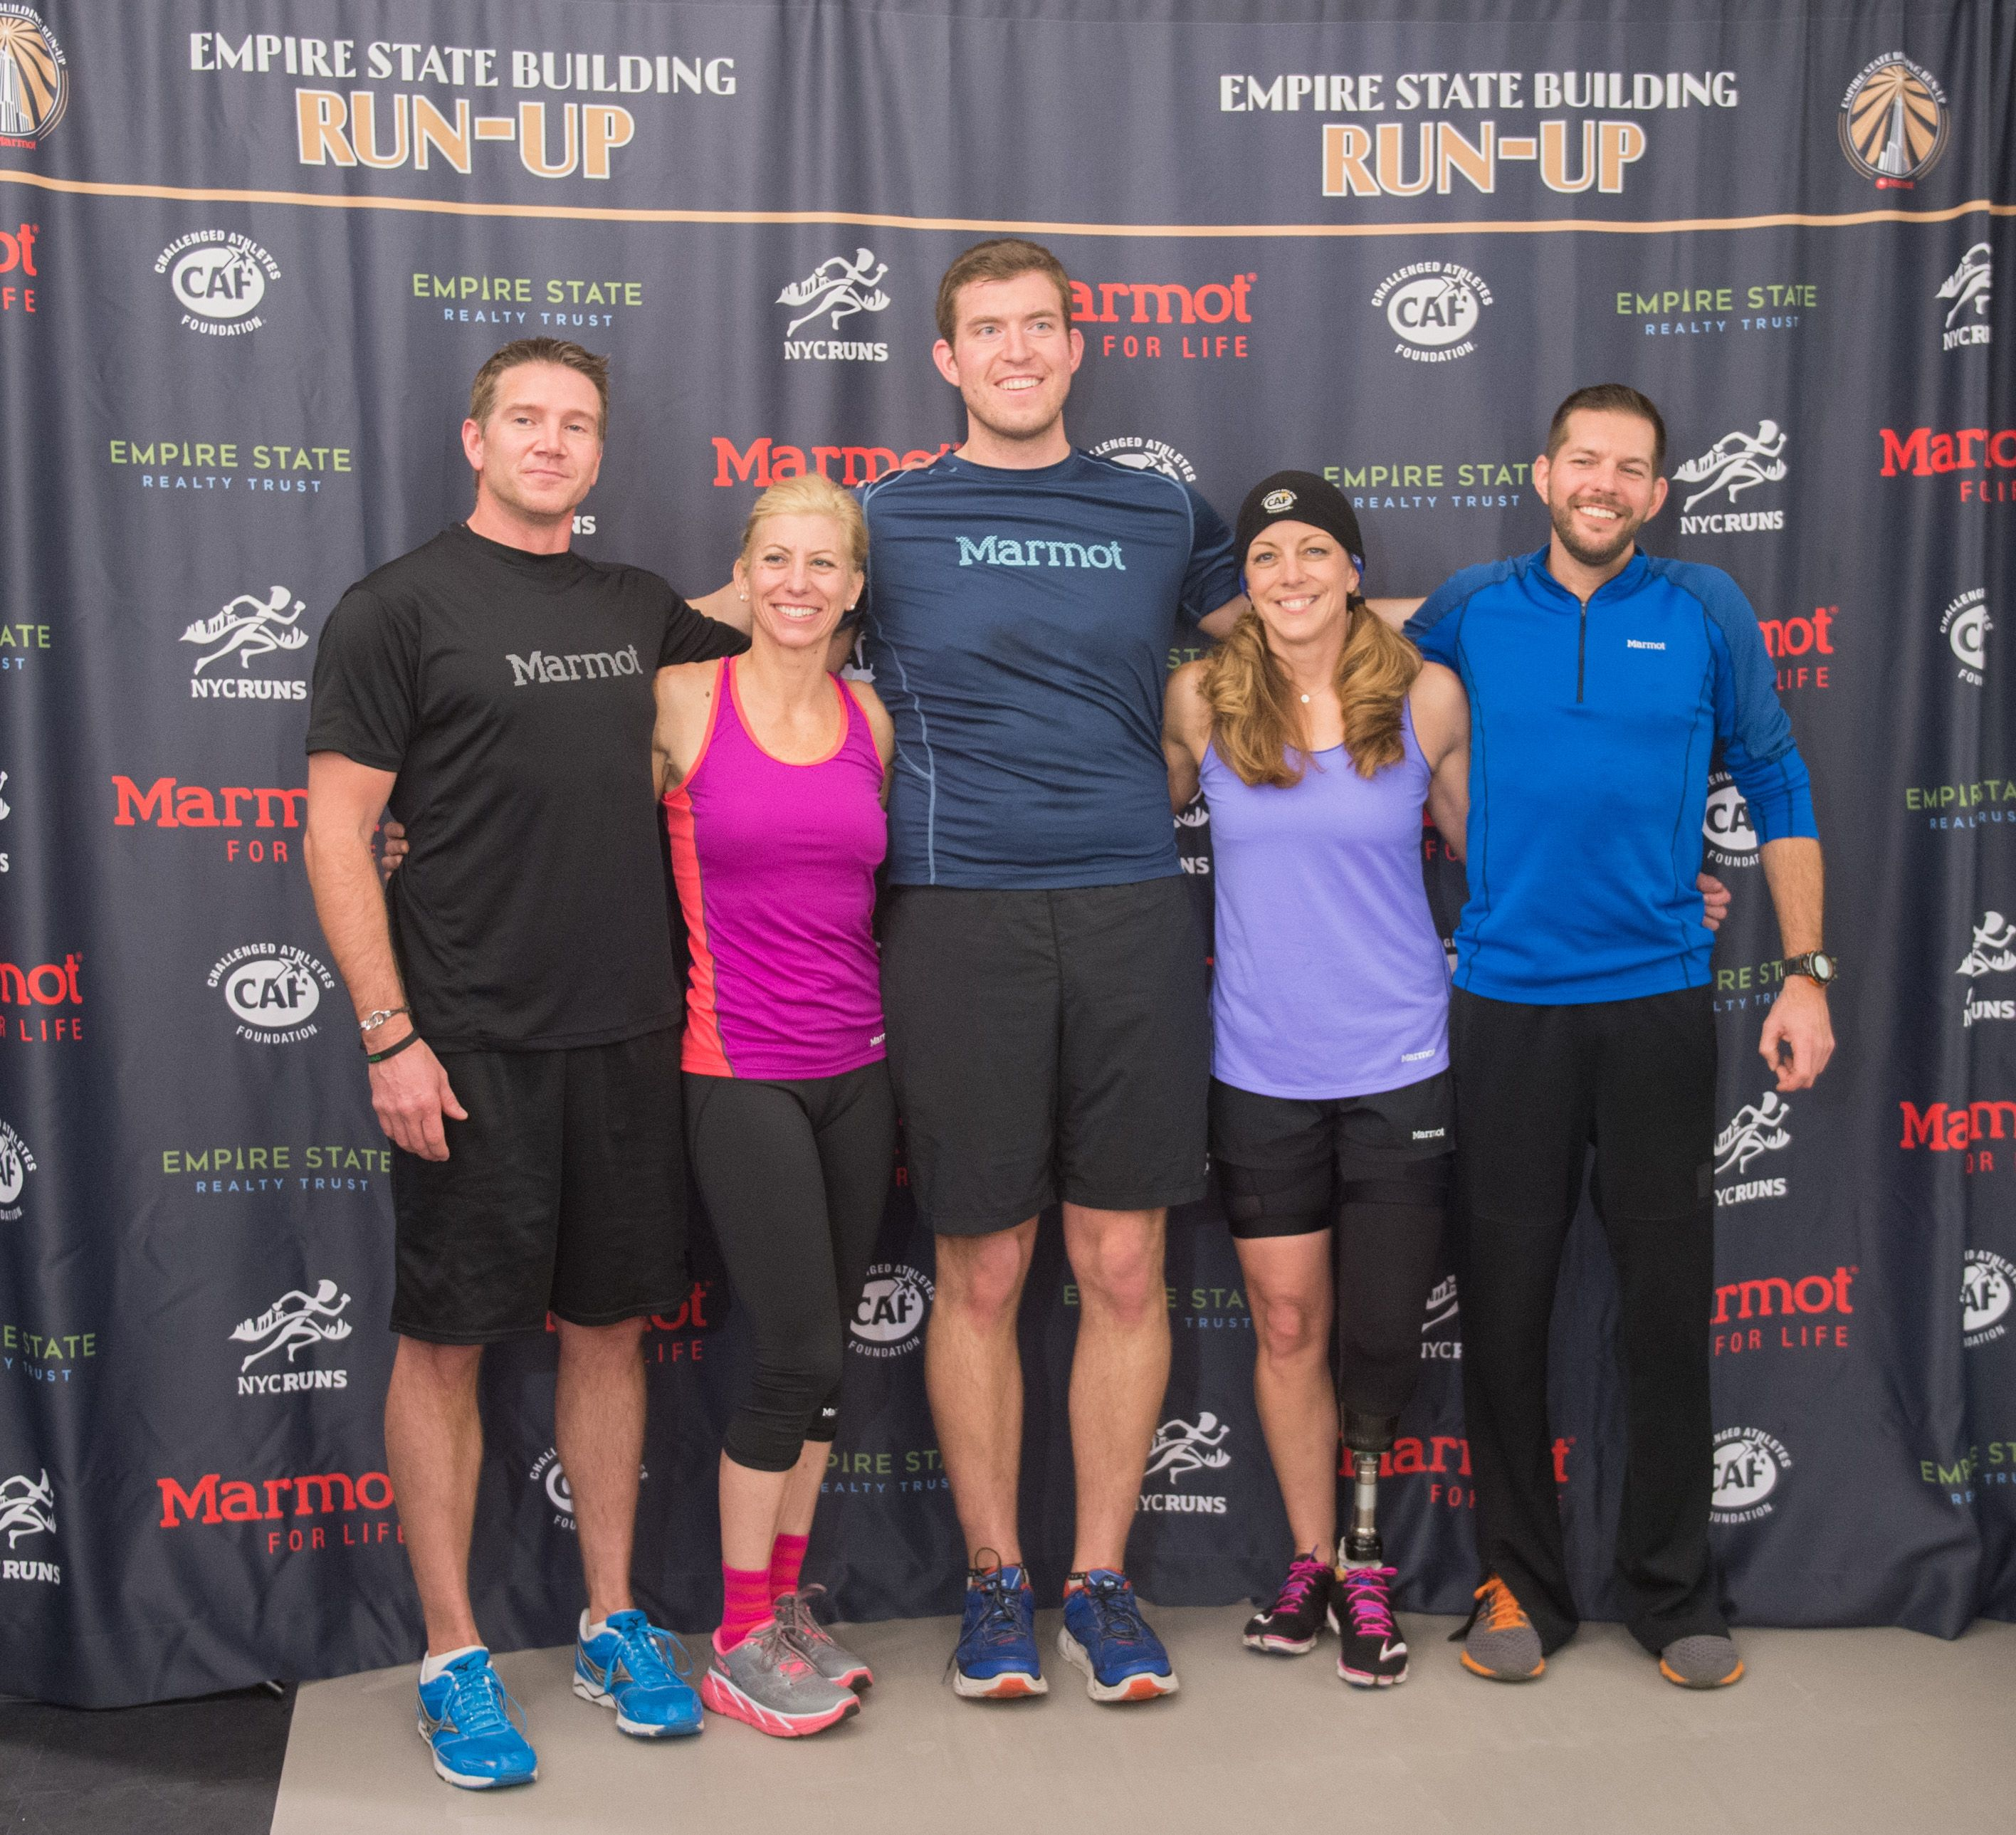 February 1, 2016: After months of training, the competitors in the 2016 Run-Up presented by @marmotmountain are ready—almost! World-class ambassador athletes with Marmot and the @cafoundation team participate in a training session in the Empire State Building's Fitness Center to prep for the big event.